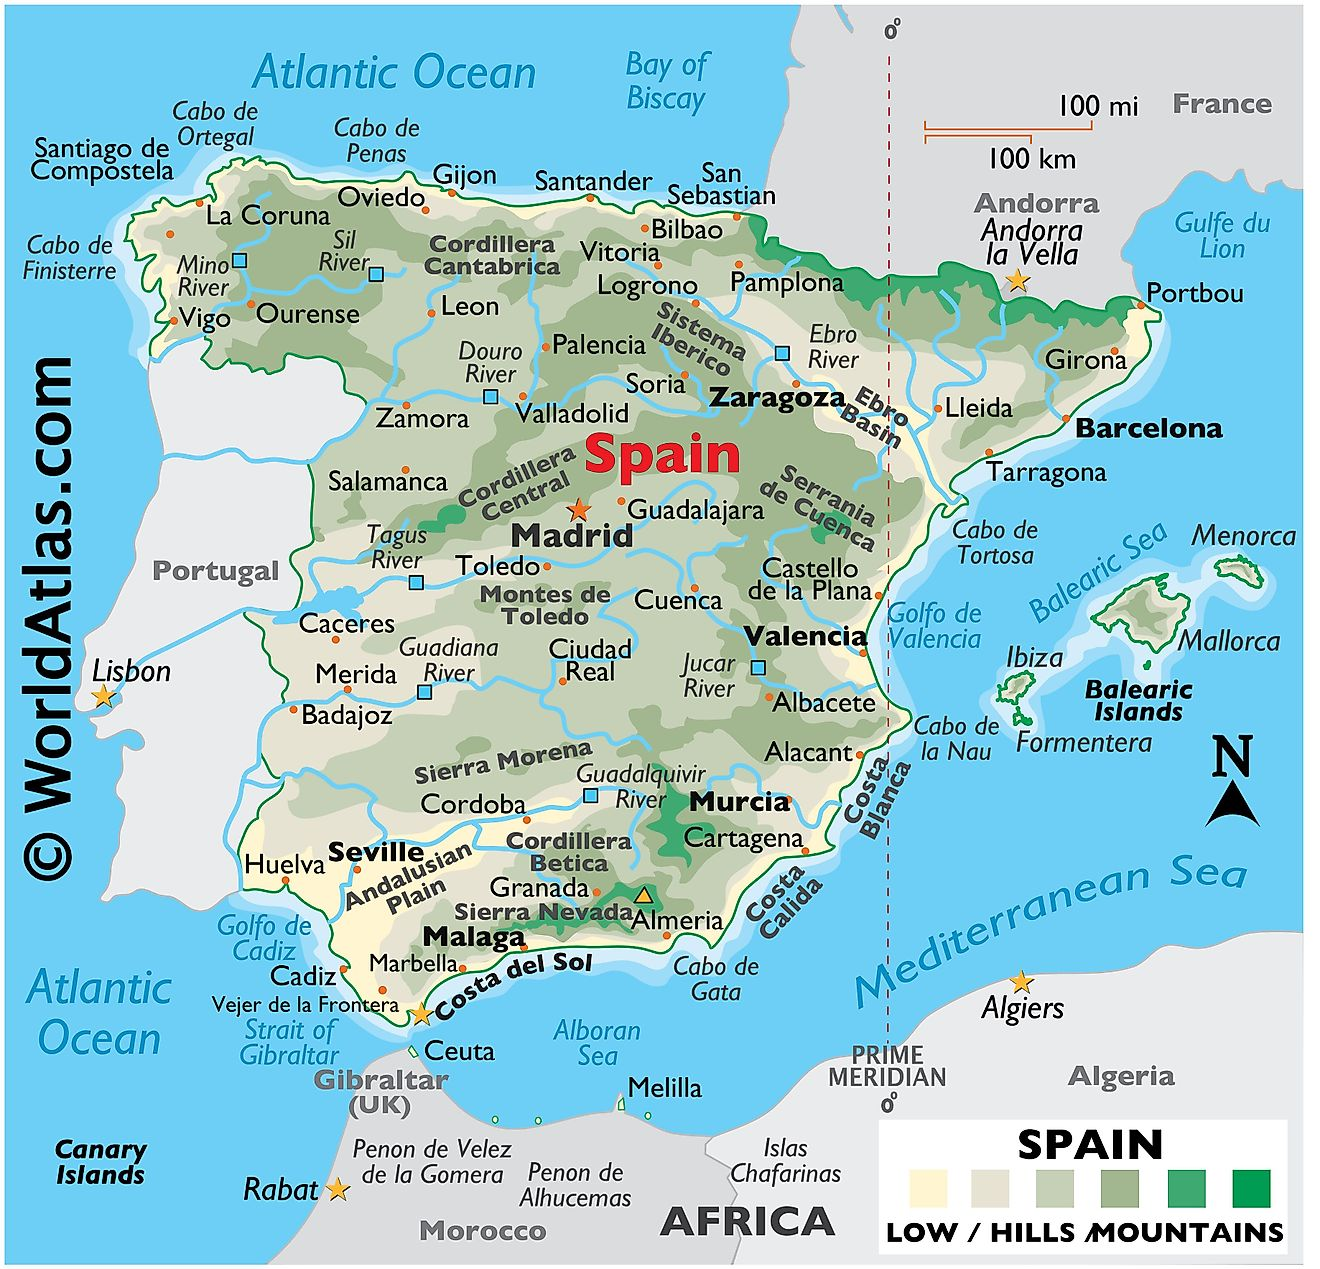 Physical Map of Spain showing its relief, state boundaries, mountains, extreme points, major lakes, rivers, important cities, etc.